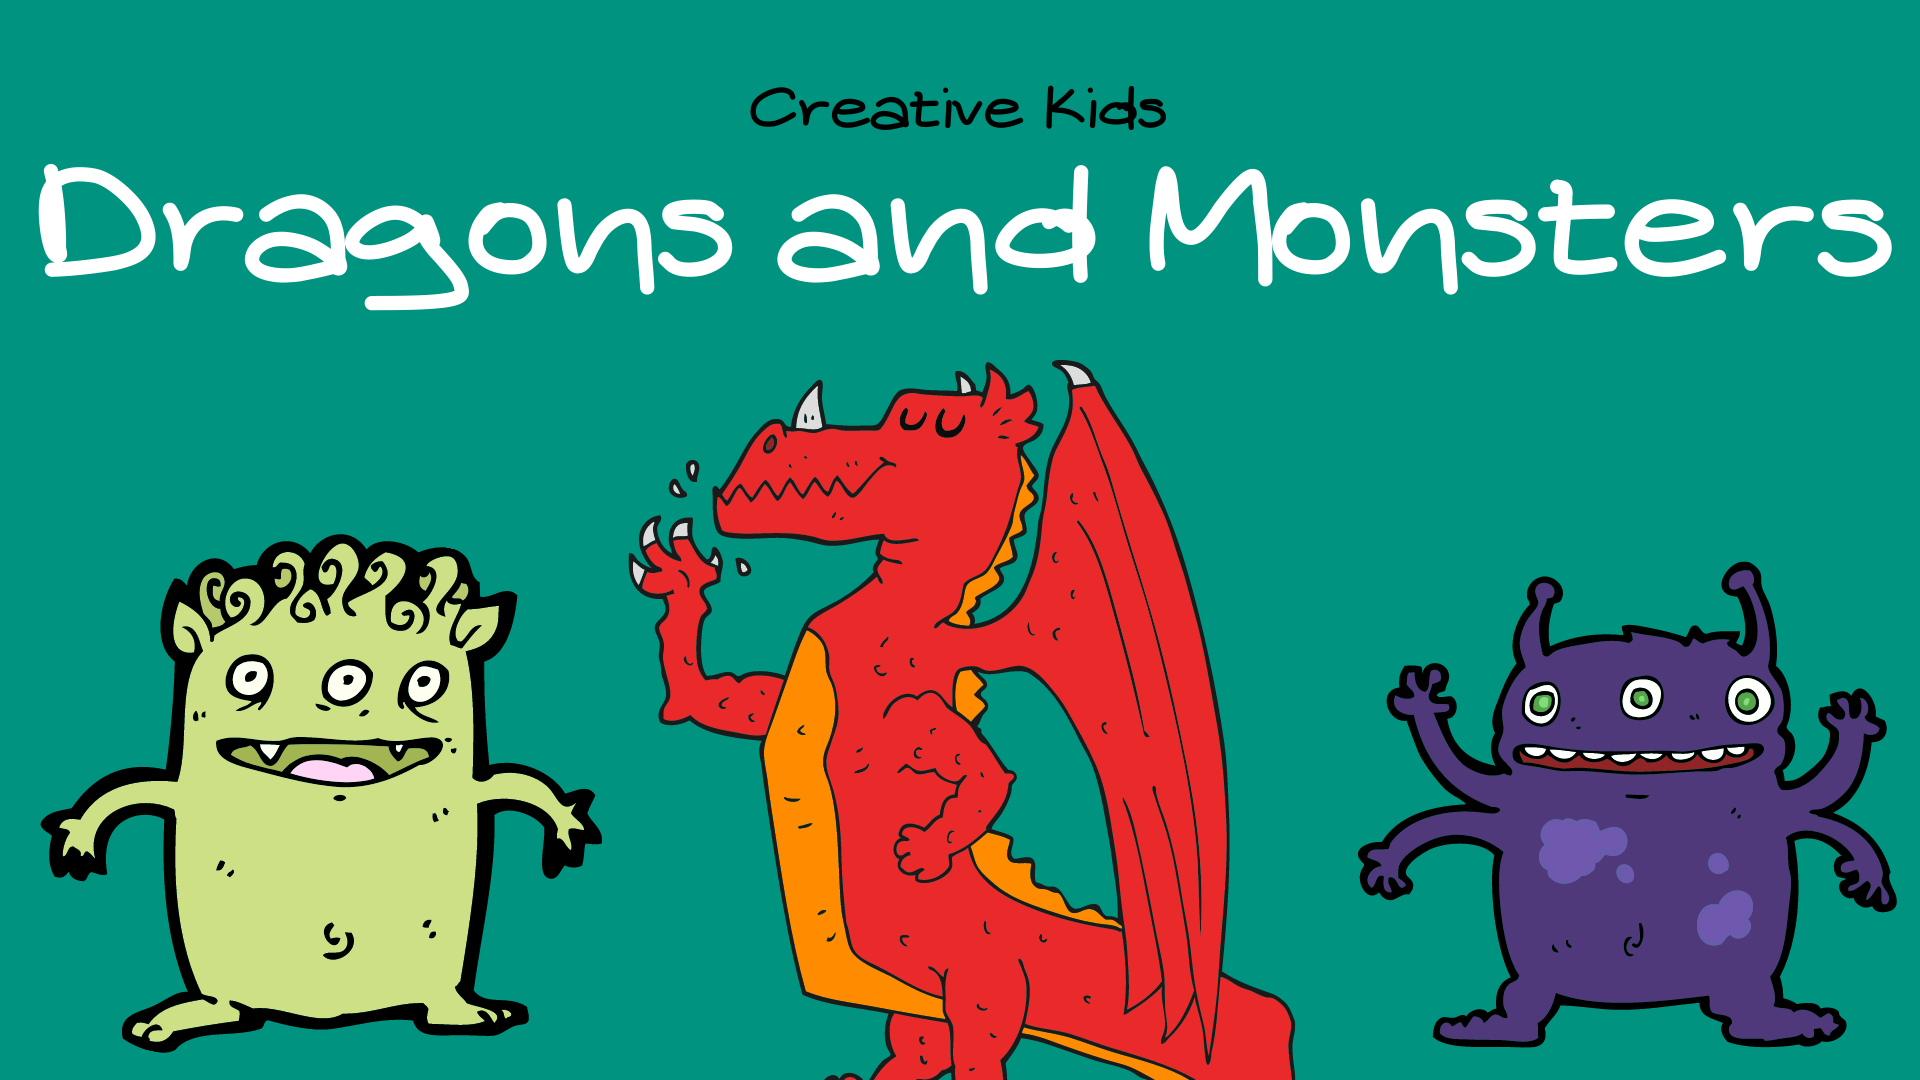 Creative Kids: Dragons and Monsters